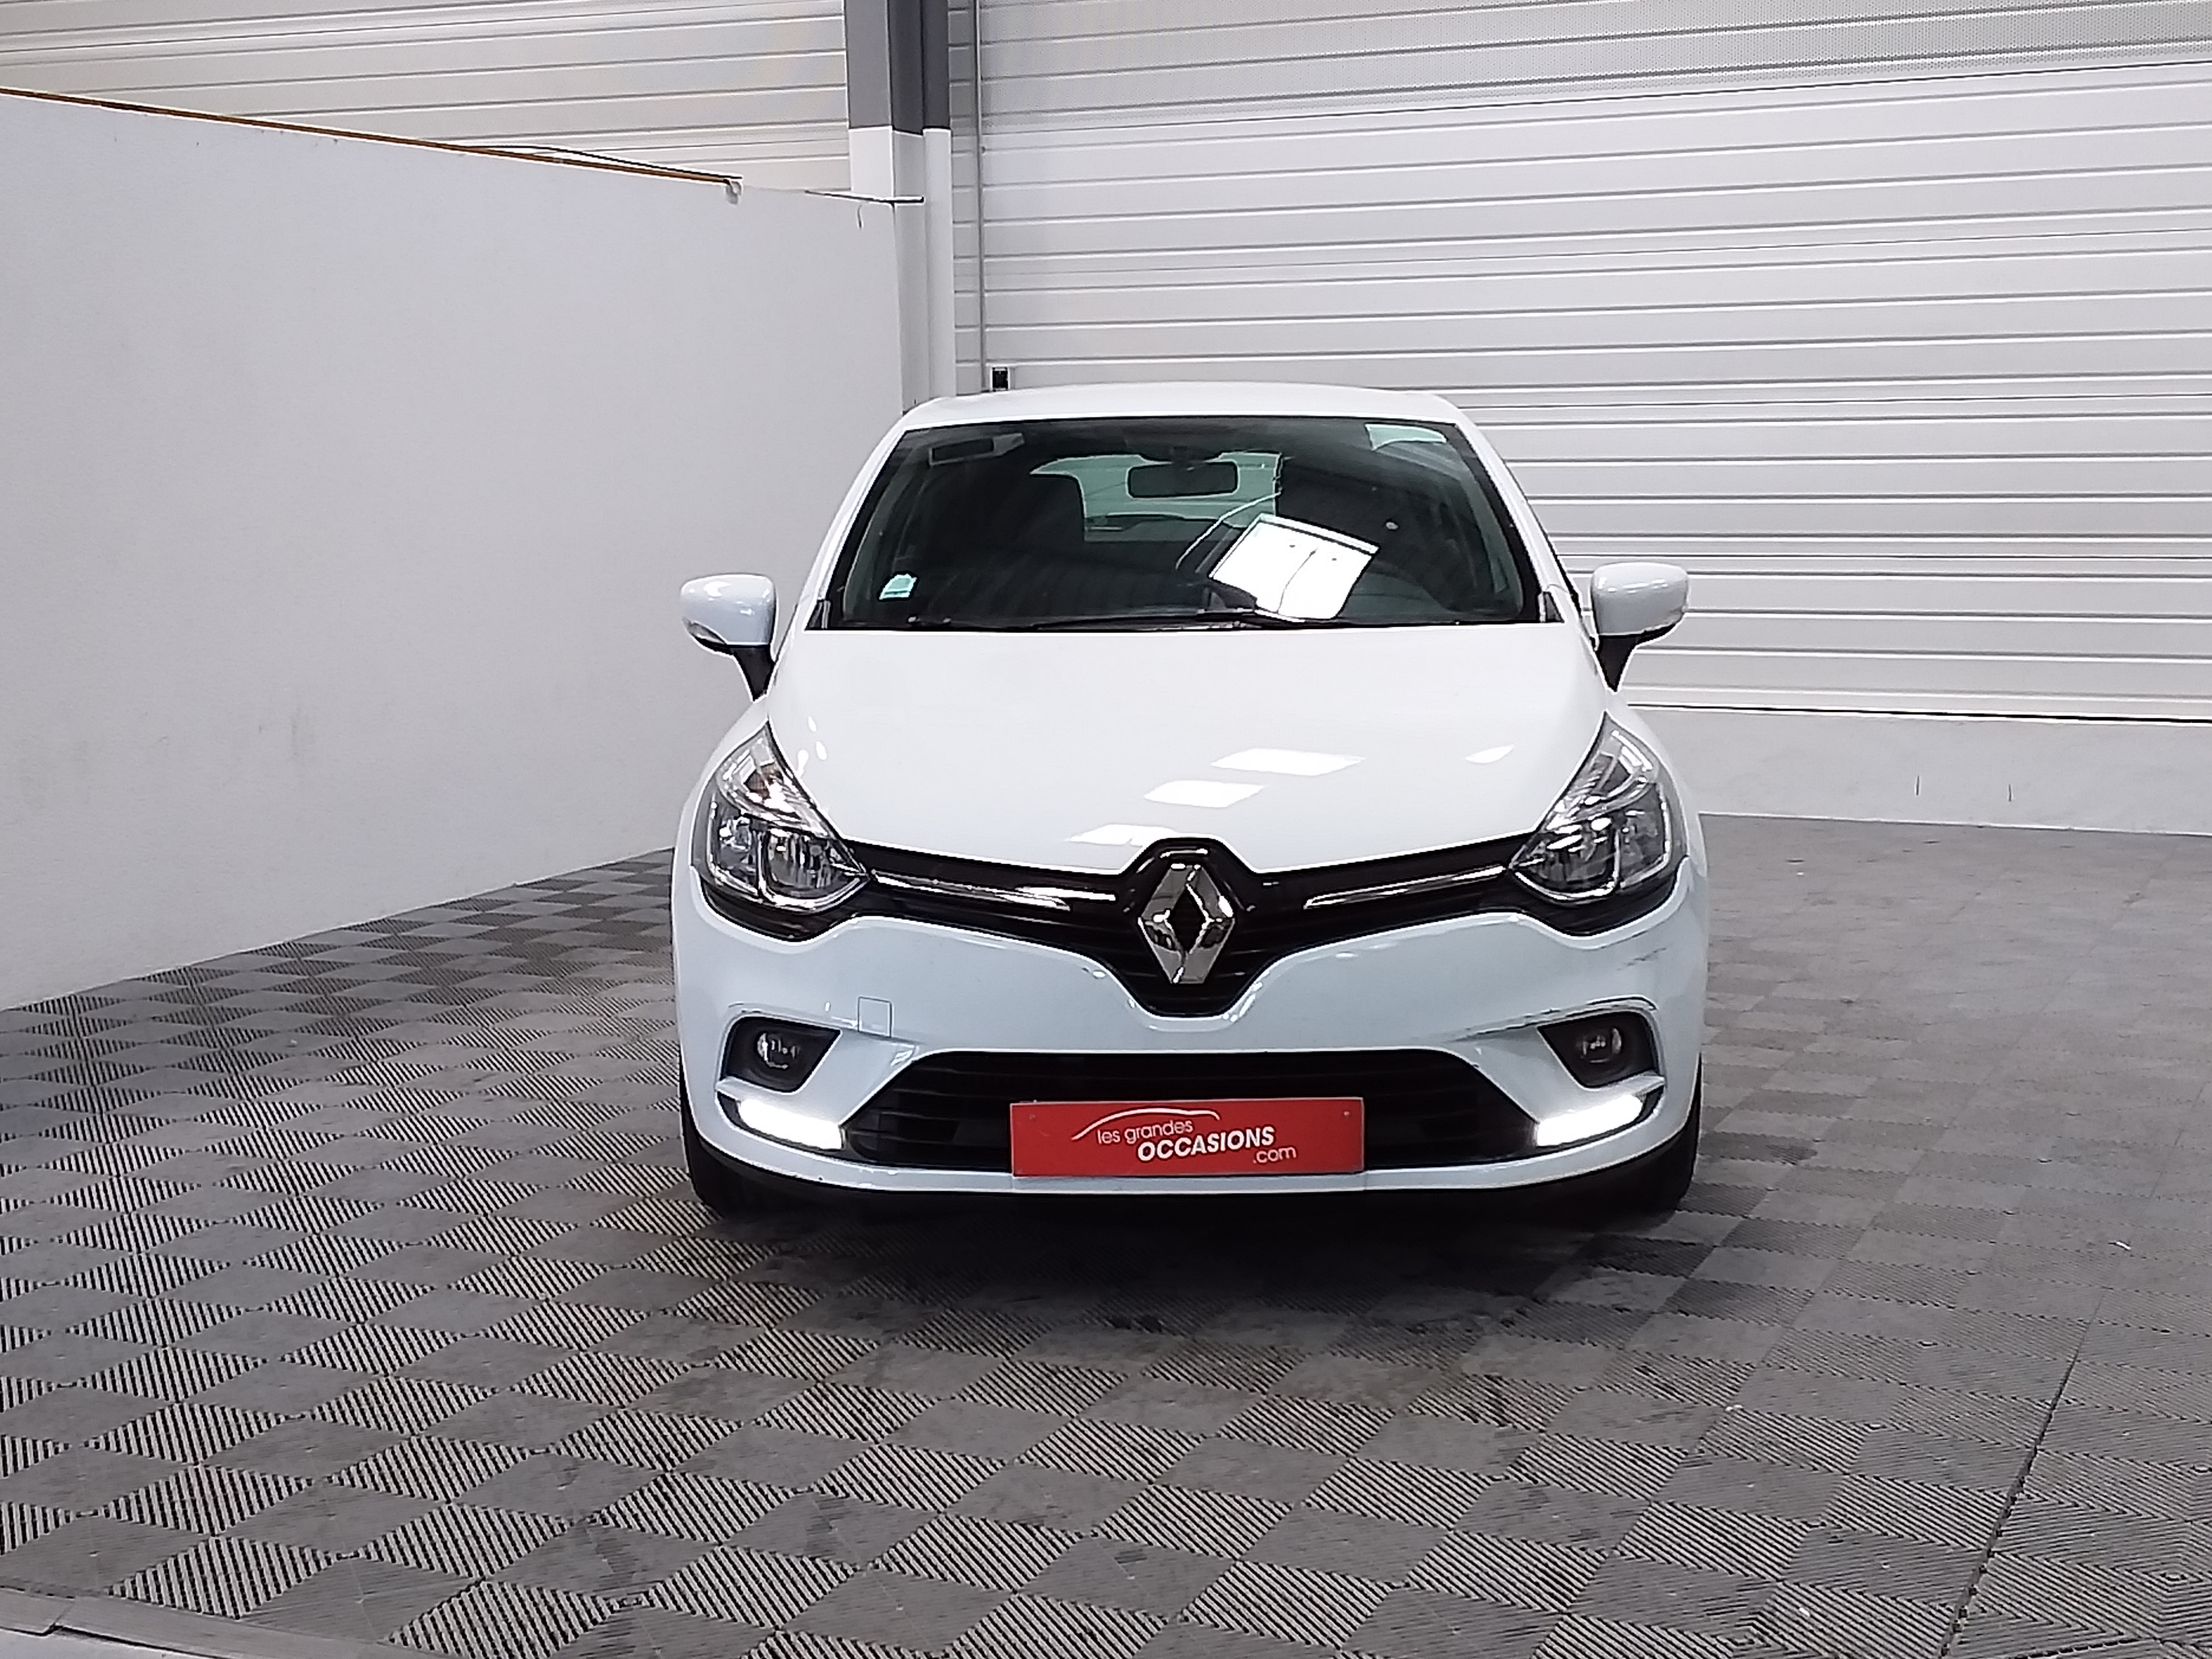 RENAULT CLIO IV SOCIETE 2017 à 5900 € - Photo n°2